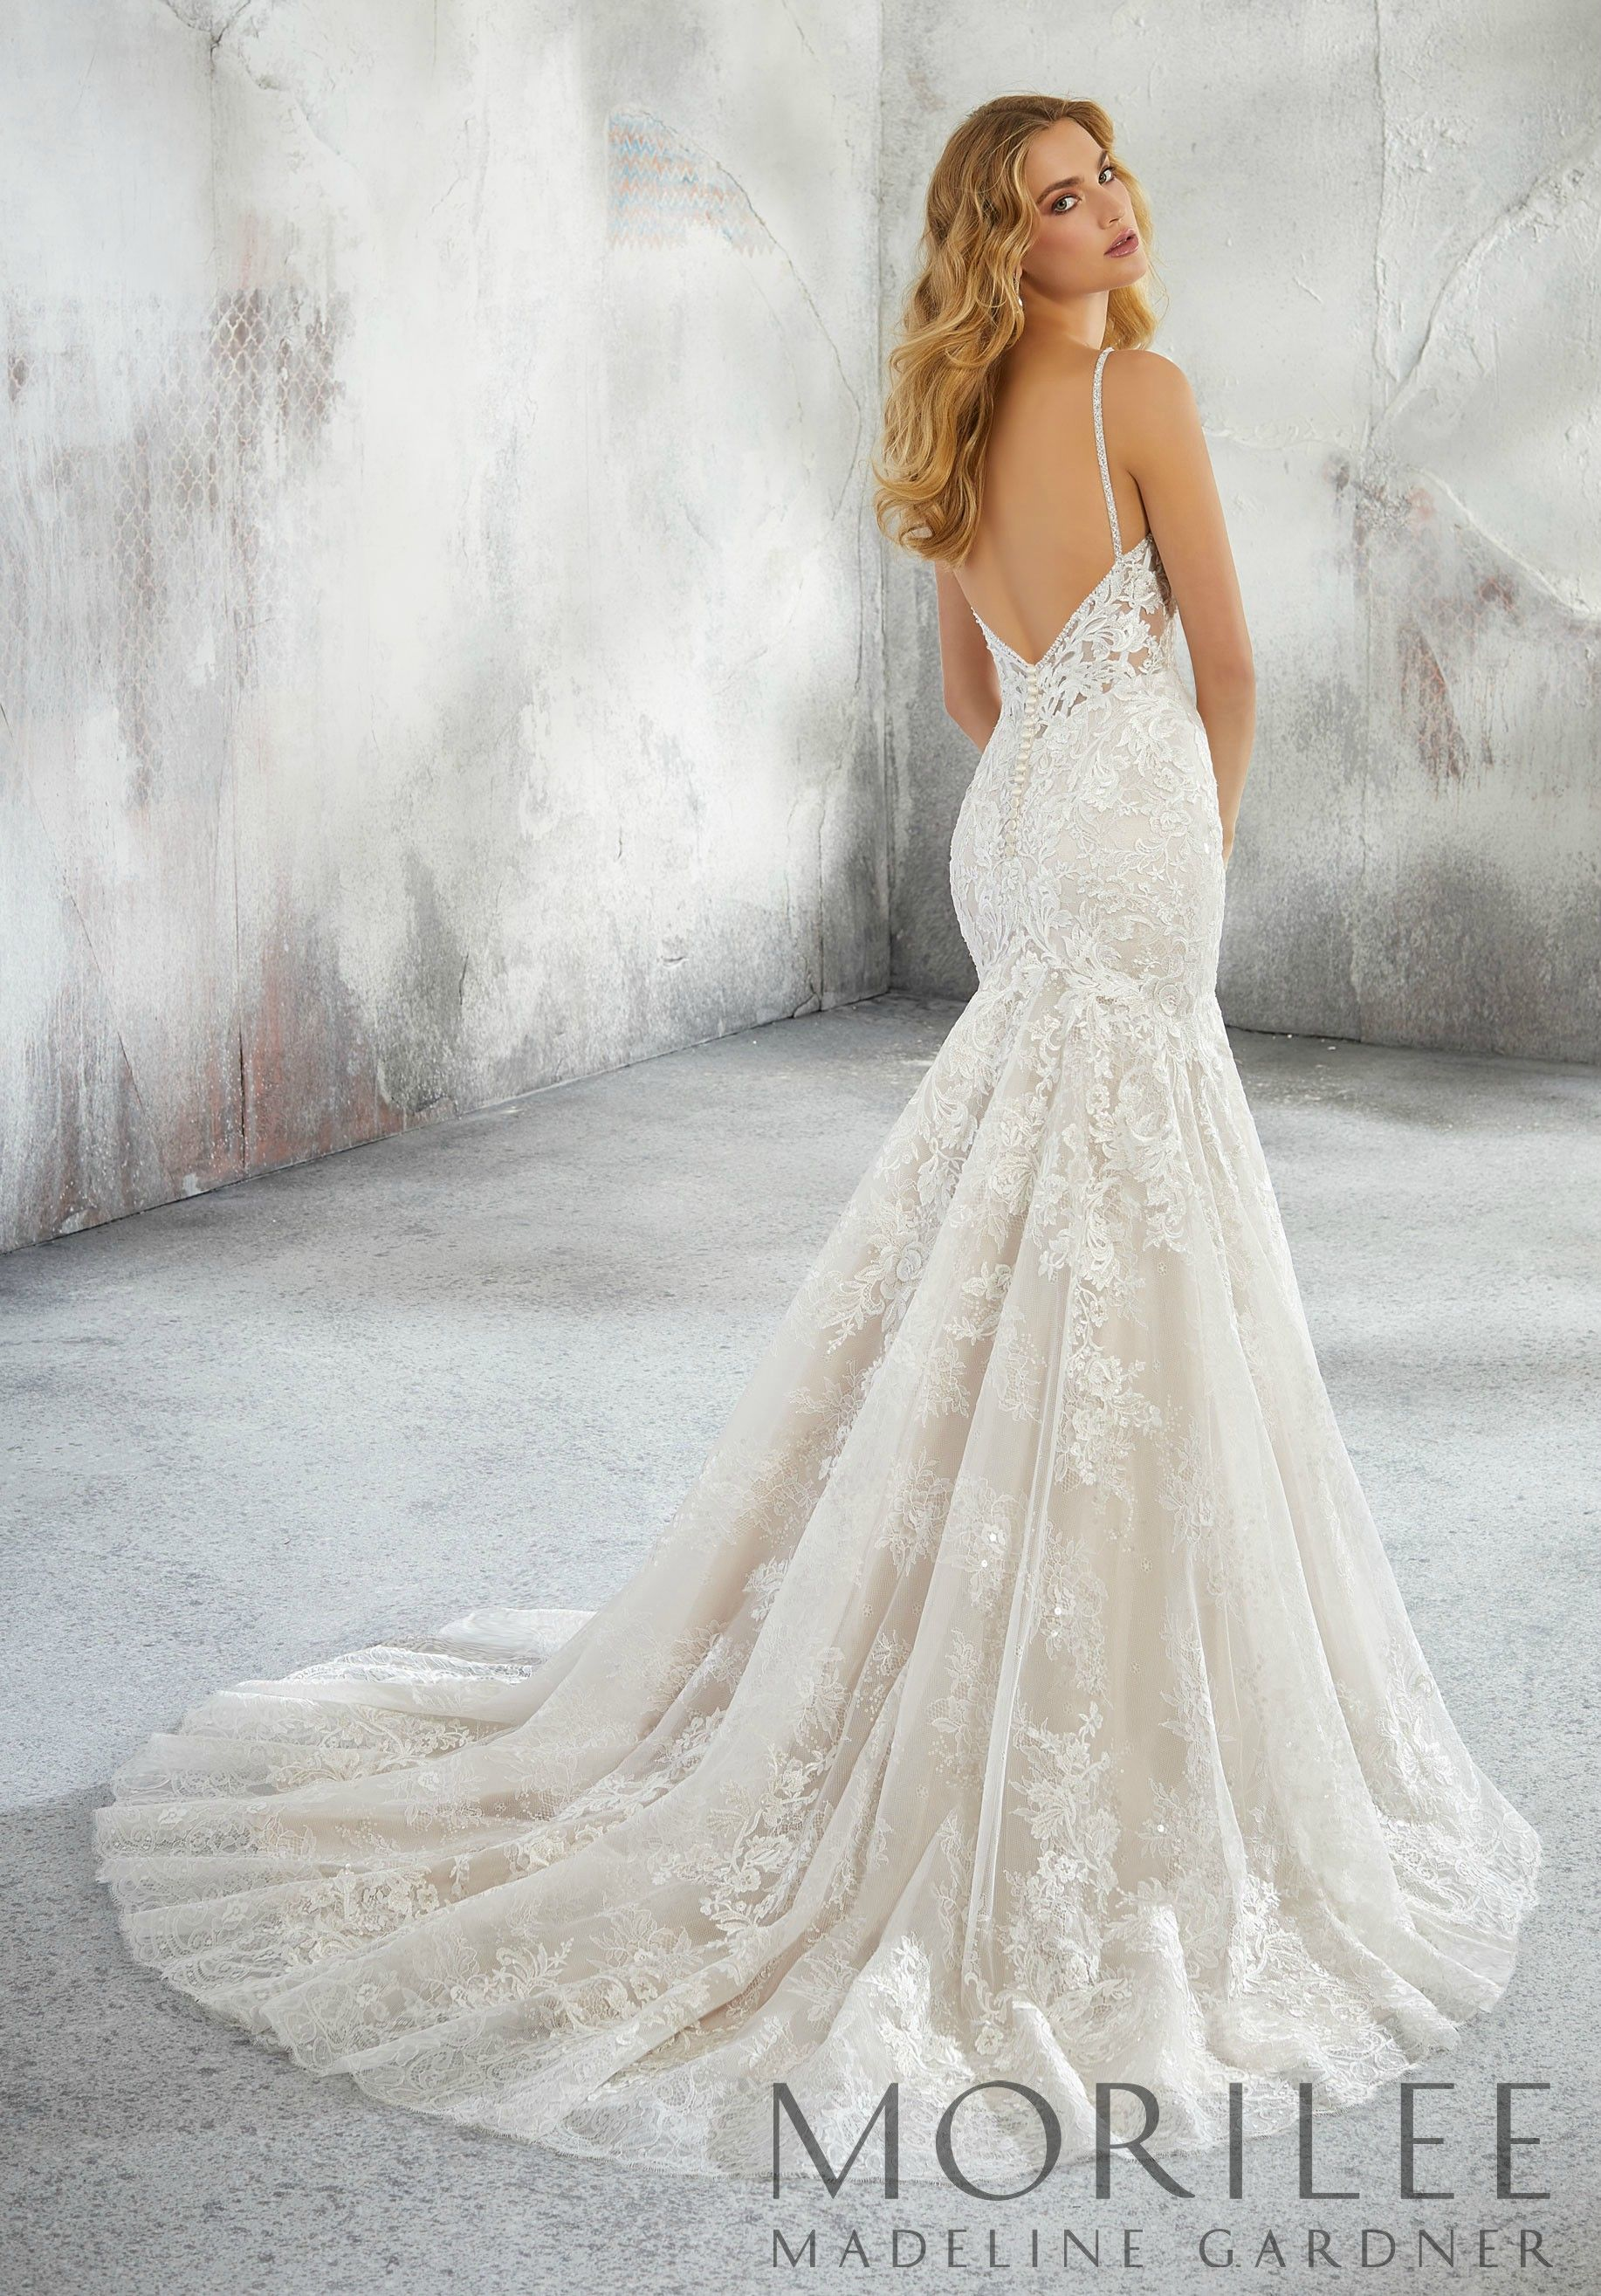 Mori lee madeline gardner wedding dress  Morilee  Madeline Gardner Lexi Style   Classic Chantilly Lace